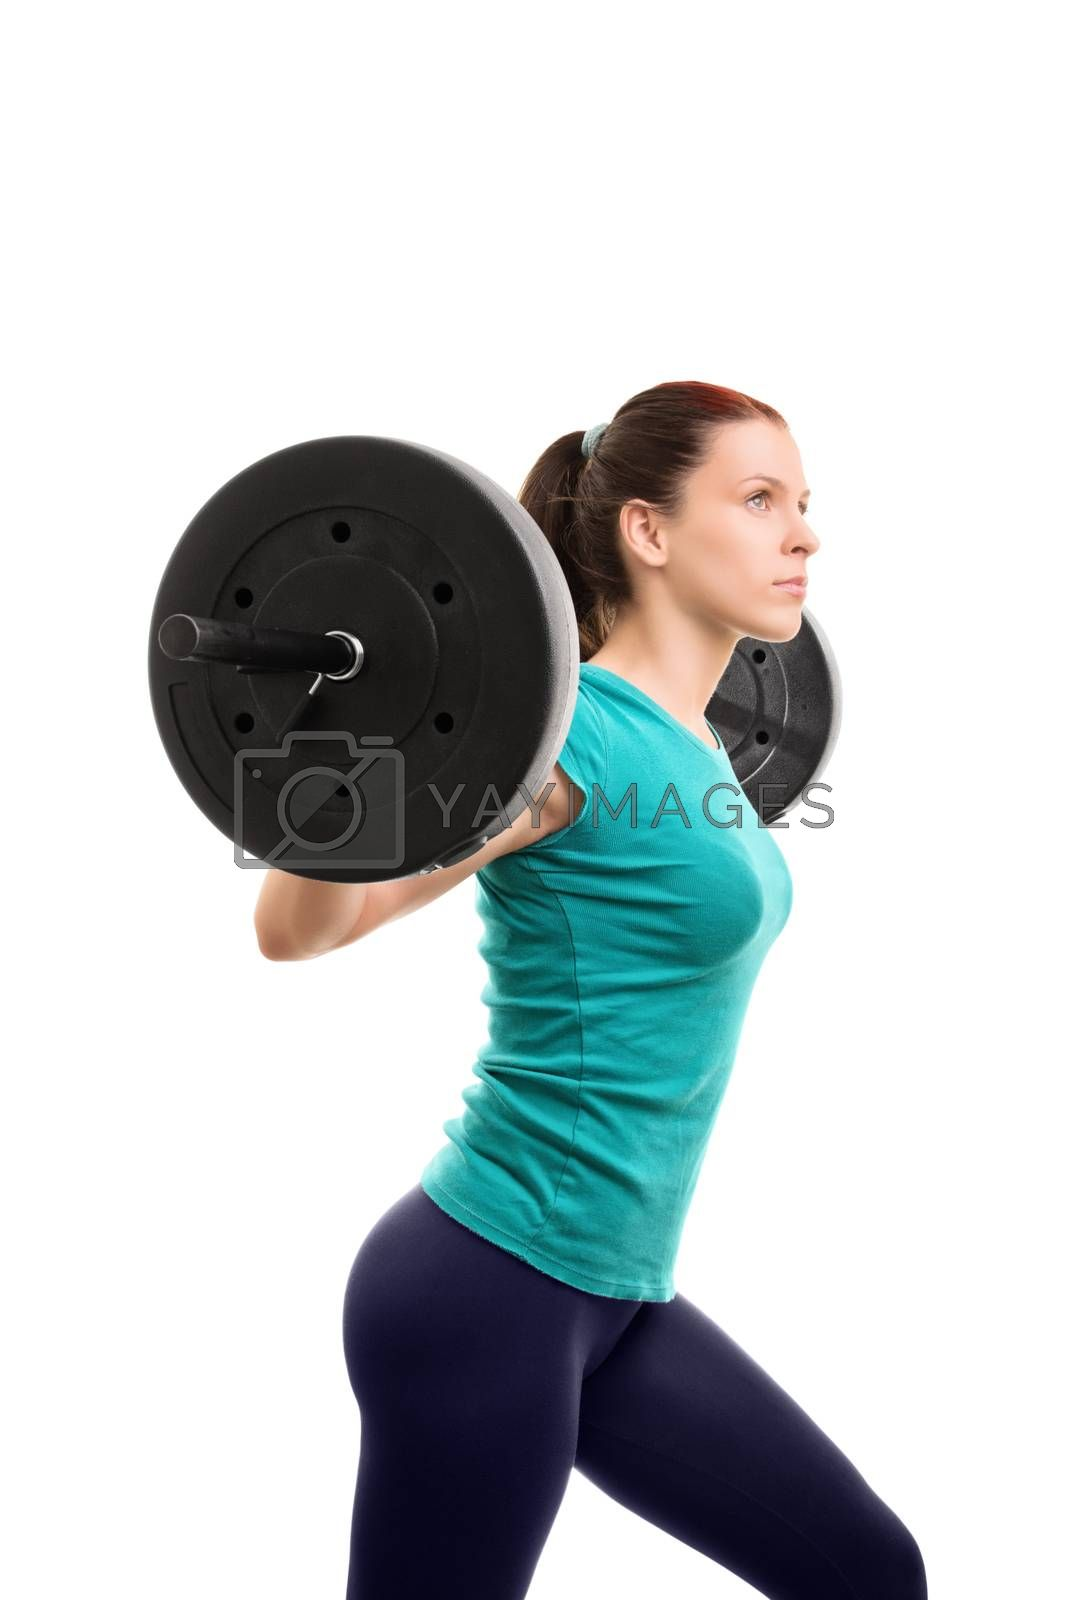 Imagining and getting the perfect you. Beautiful young girl holding a barbell, isolated on white background. Ready for some squats.